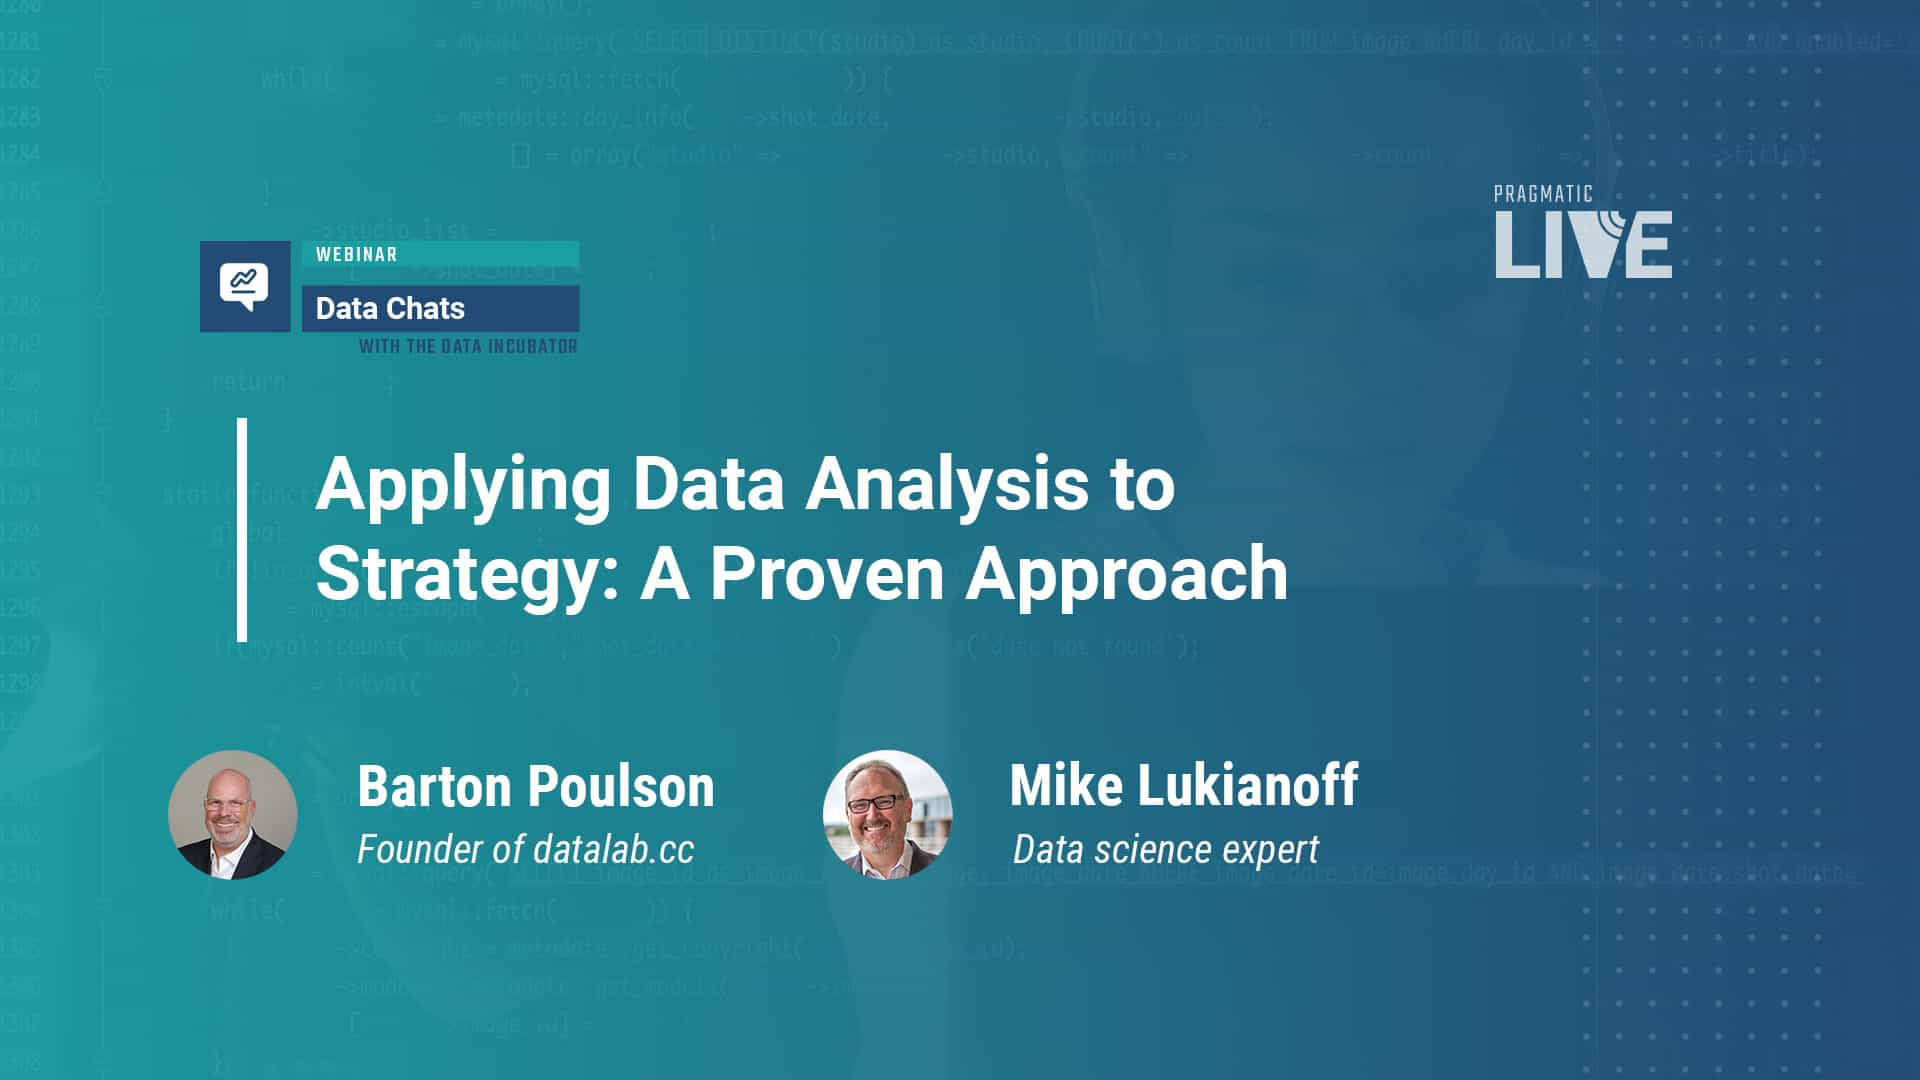 Applying Data Analysis to Strategy: A Proven Approach